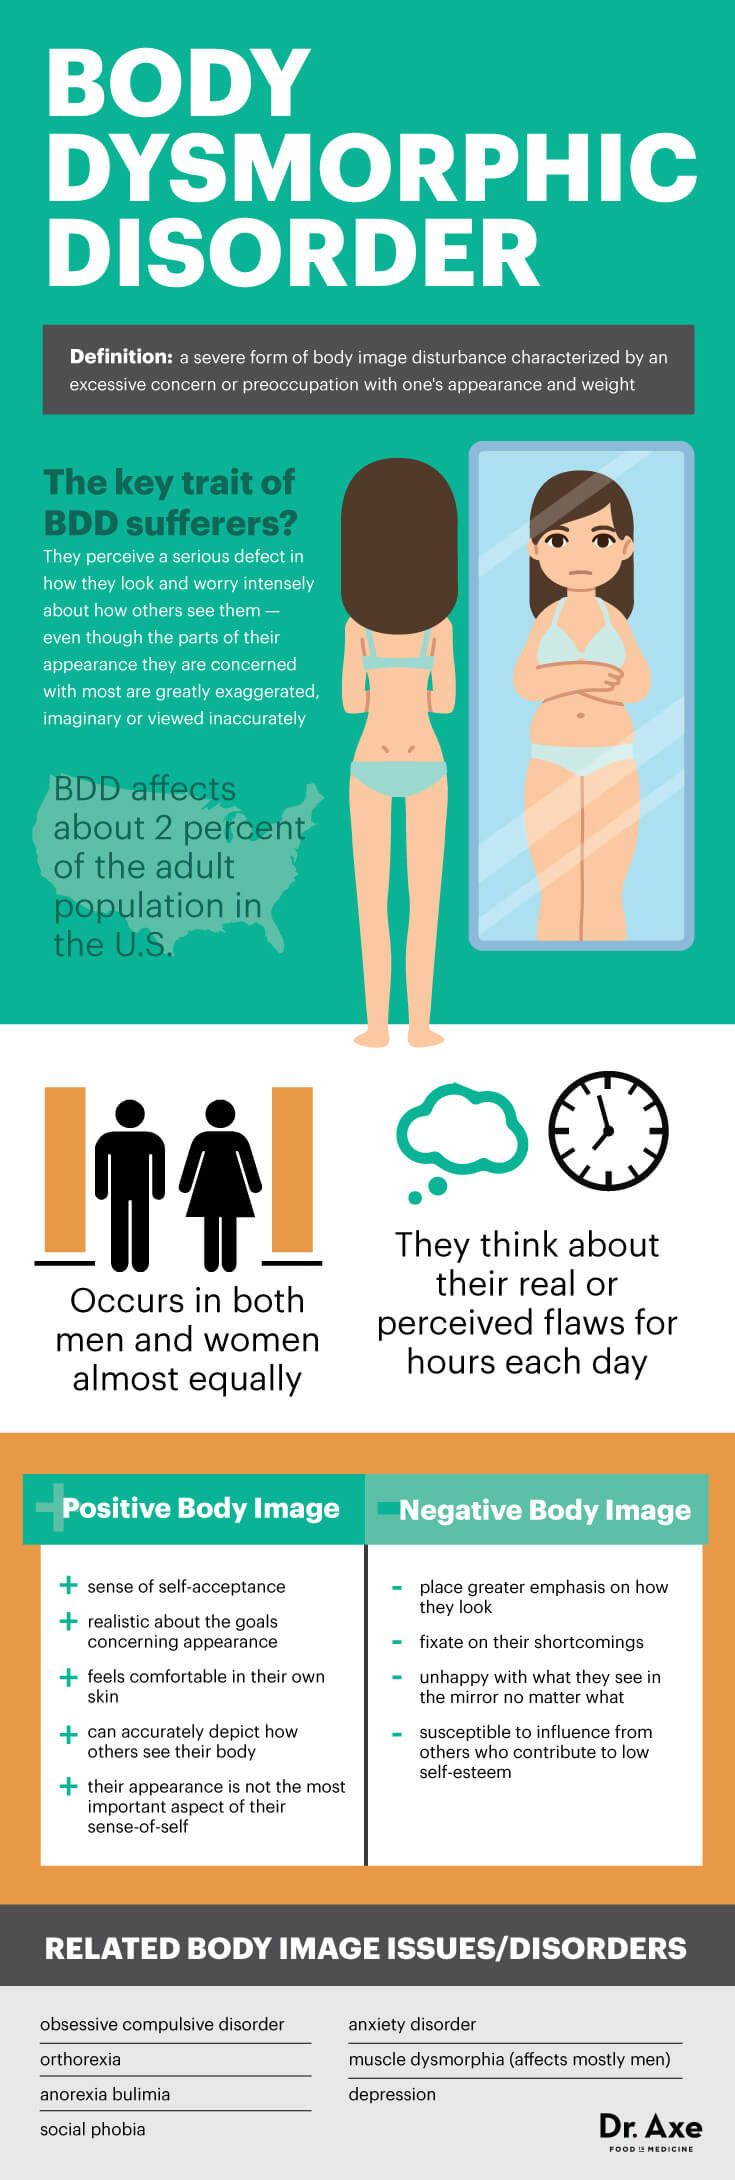 heard of body dysmorphic disorder? | dr. axe natural remedies